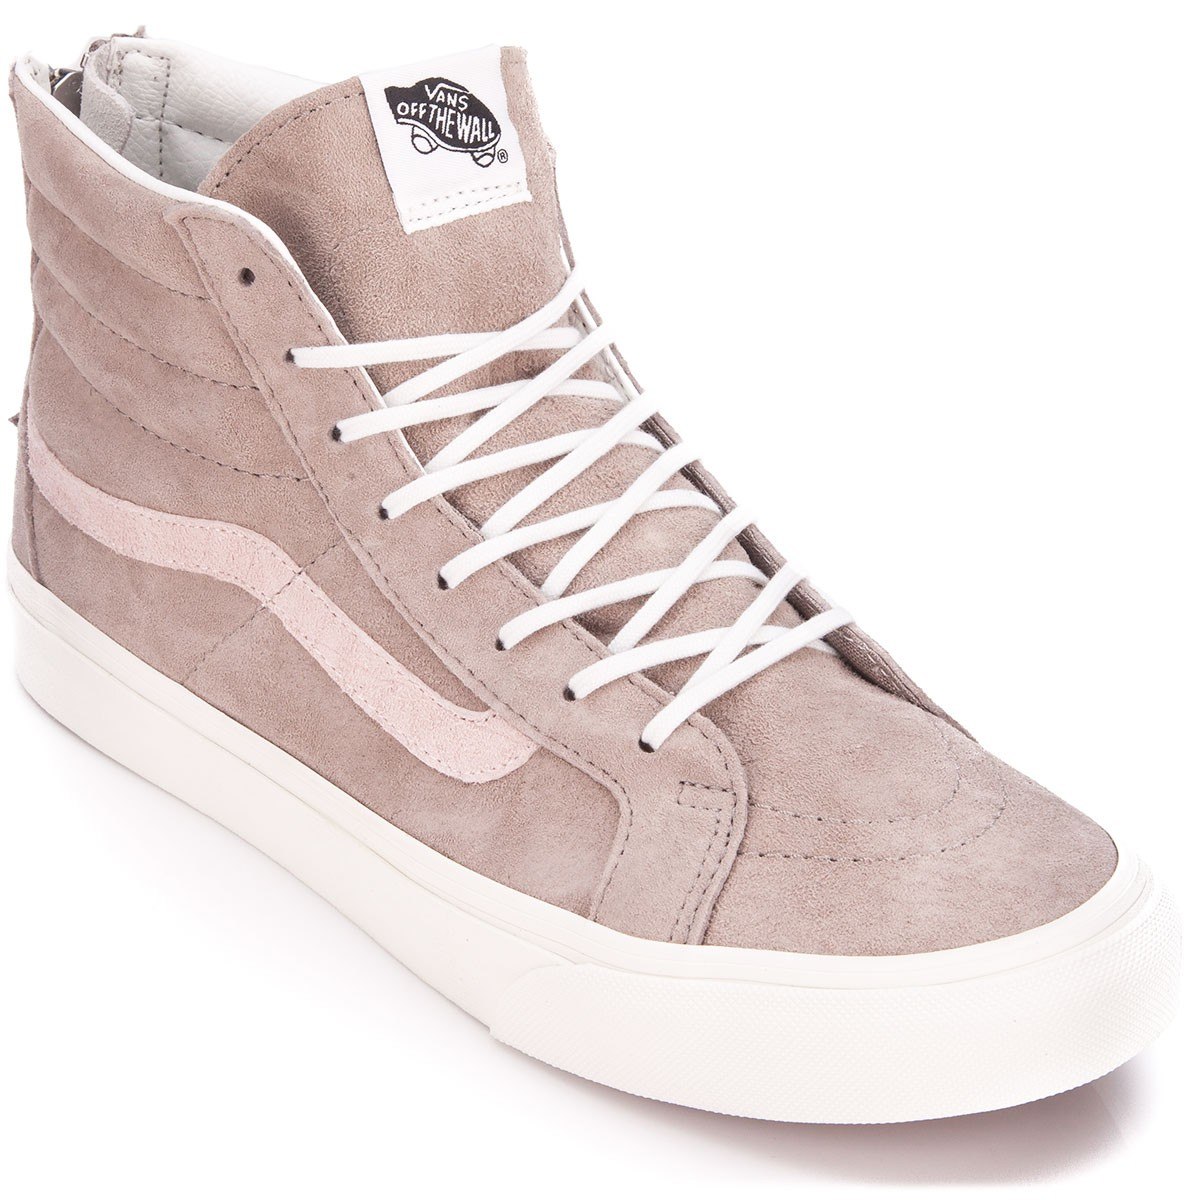 Original Product -  Vans Croc Emboss SK8-Hi Slim Zip Womens Shoes Hemp/Blanc De Blanc